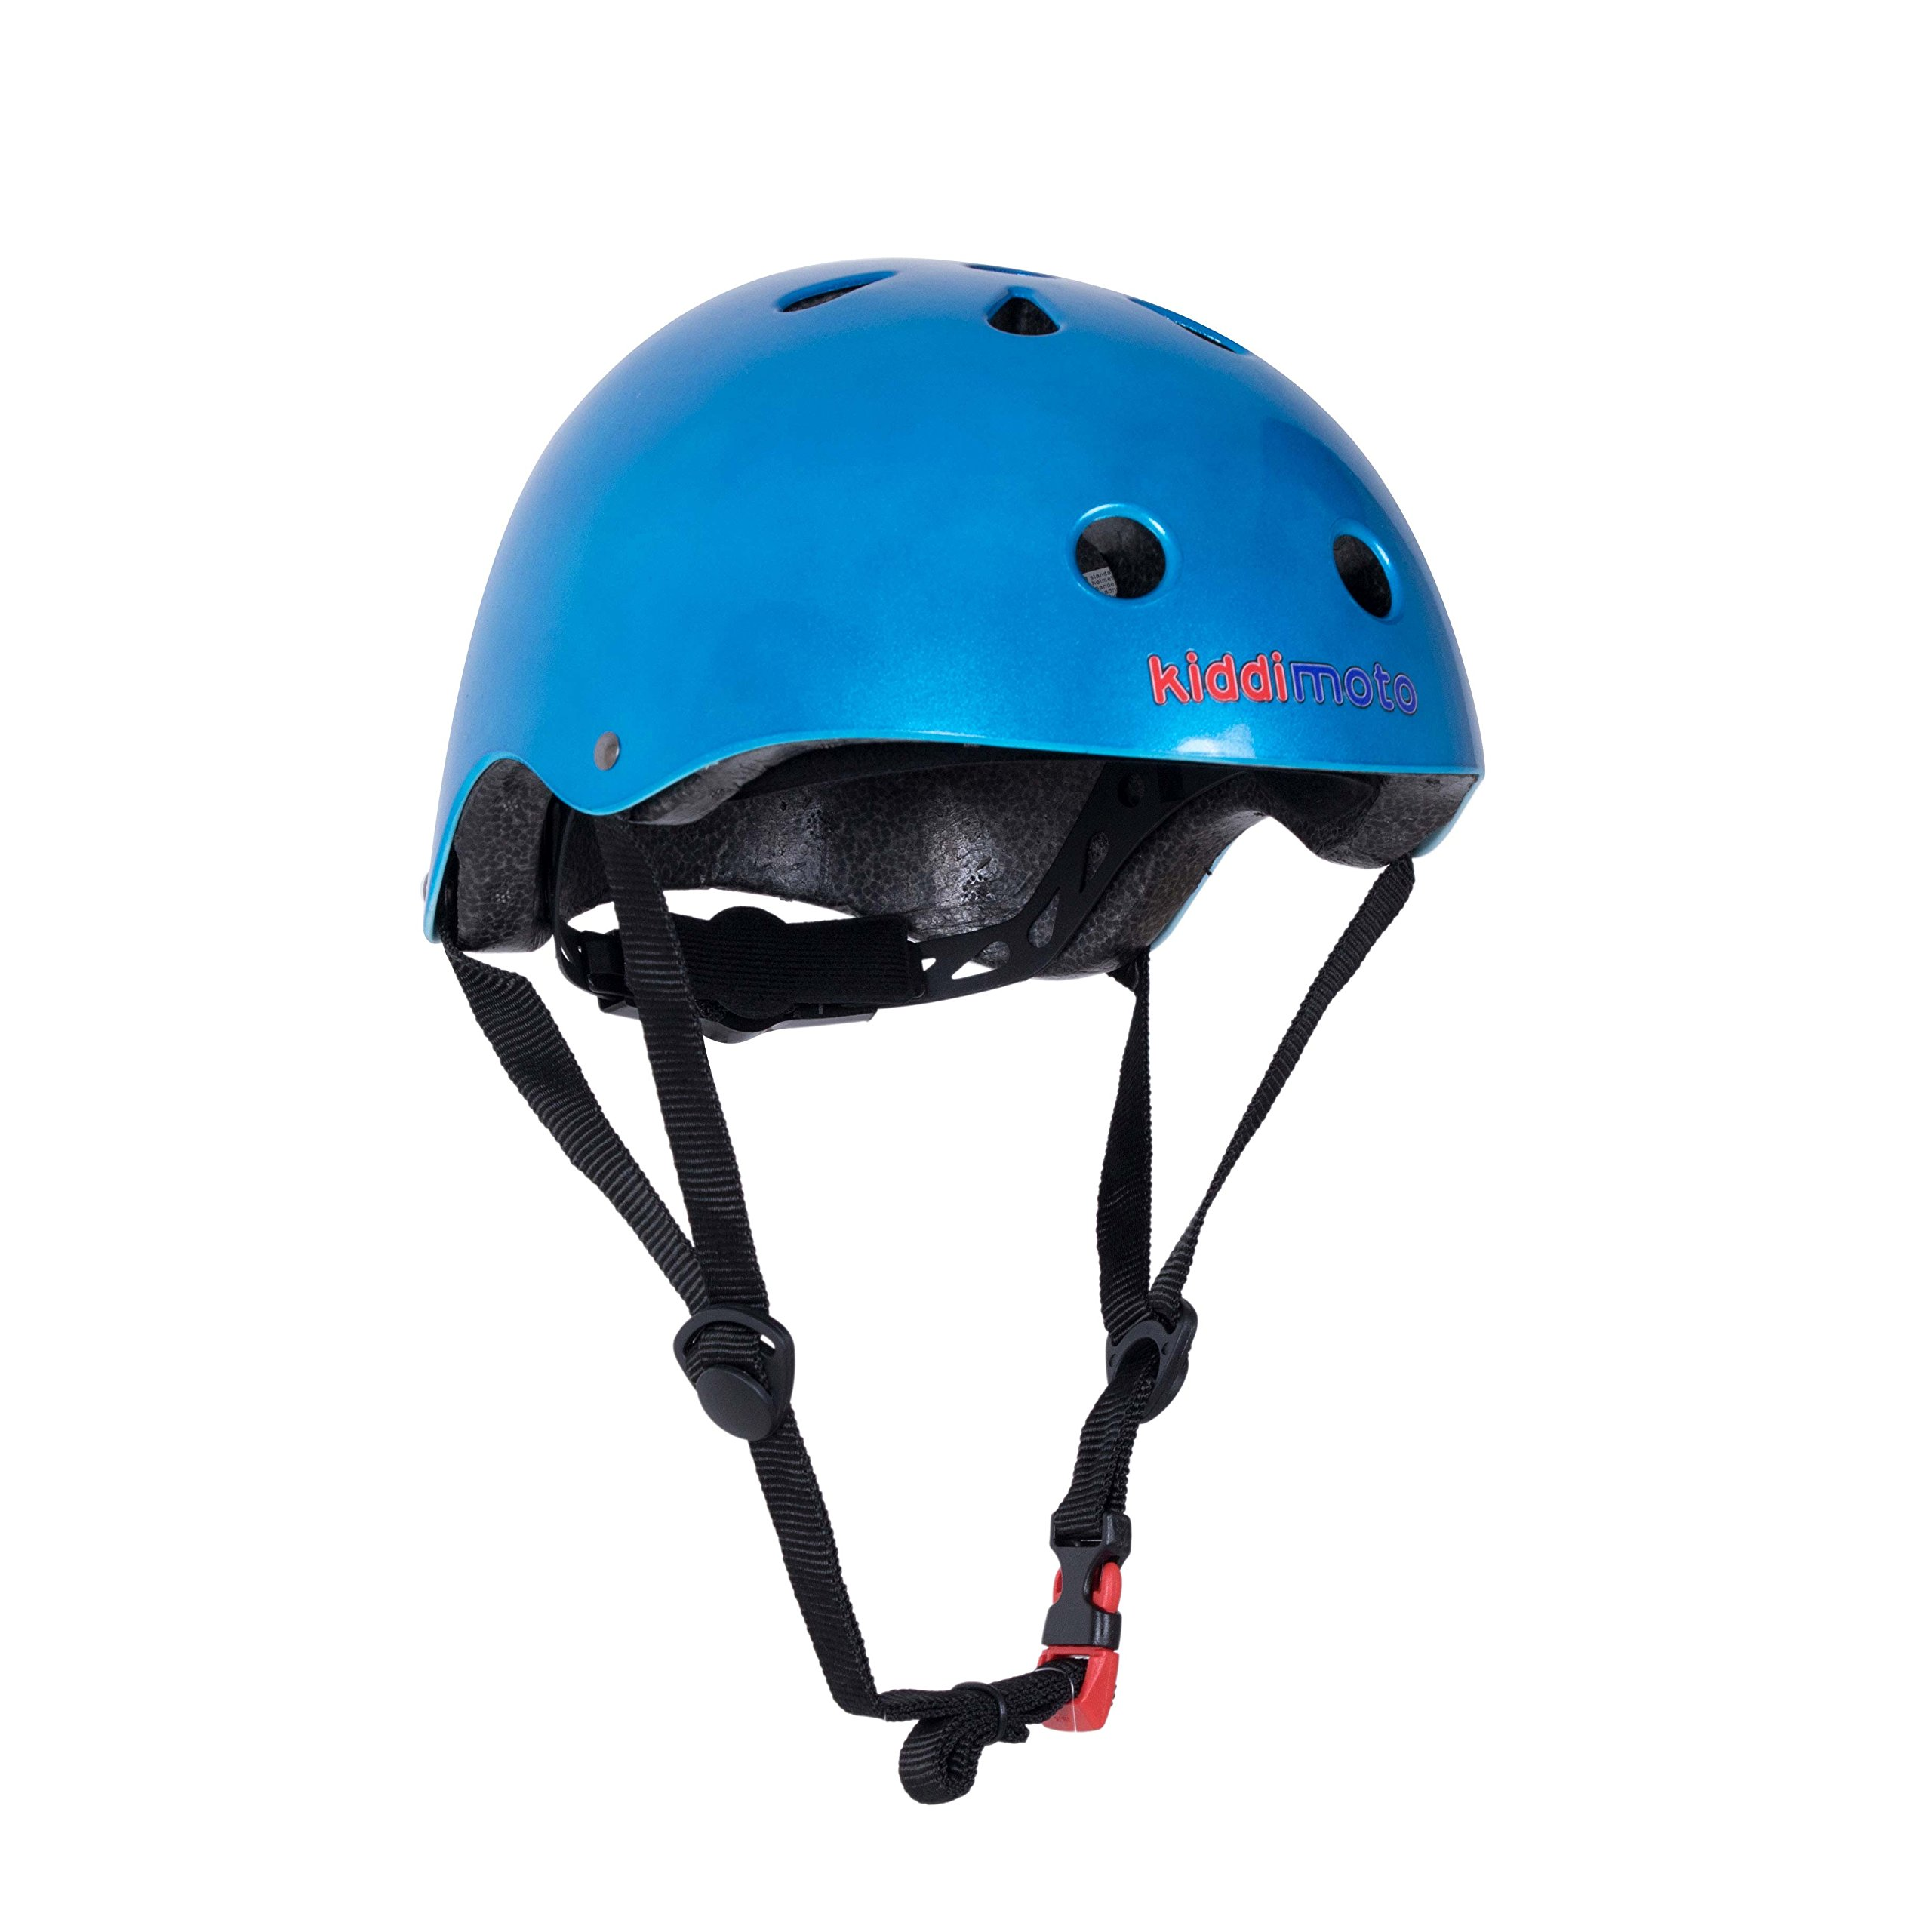 Kiddimoto Helmet, Metallic Blue, Small (48-53 cm)